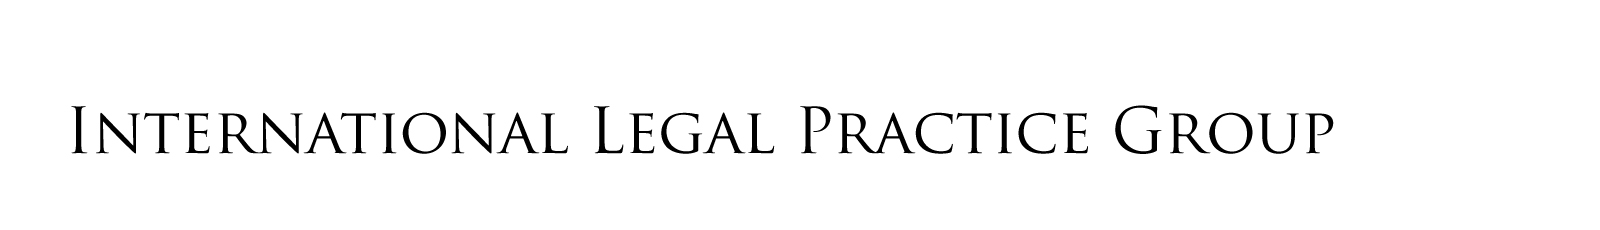 International Legal Practice Group Logo